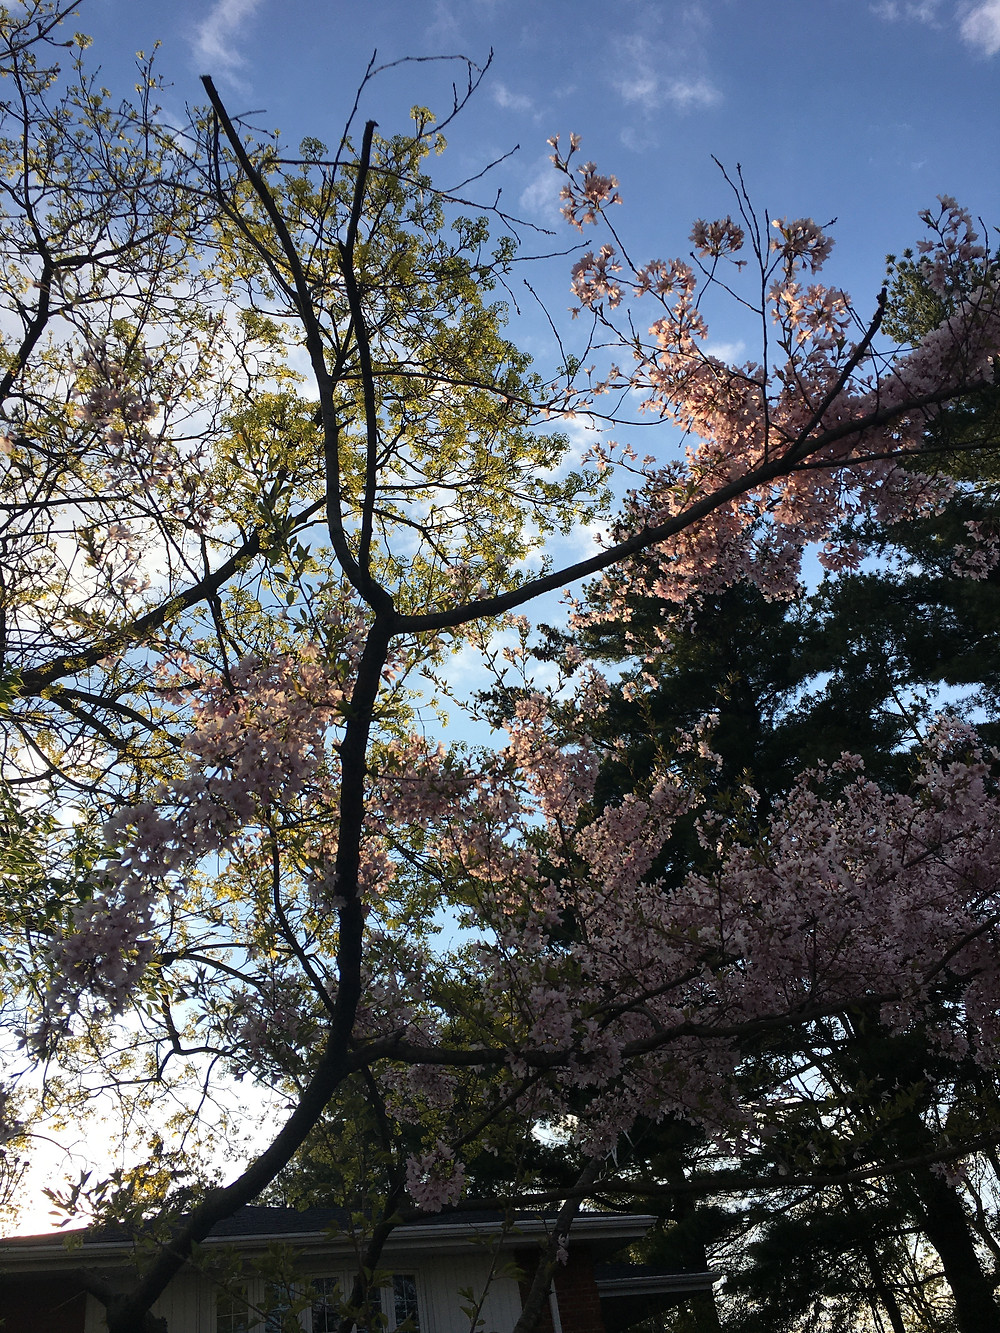 Theresa Abalos, photo of a flowering tree in Squirrel Hill, 2020.